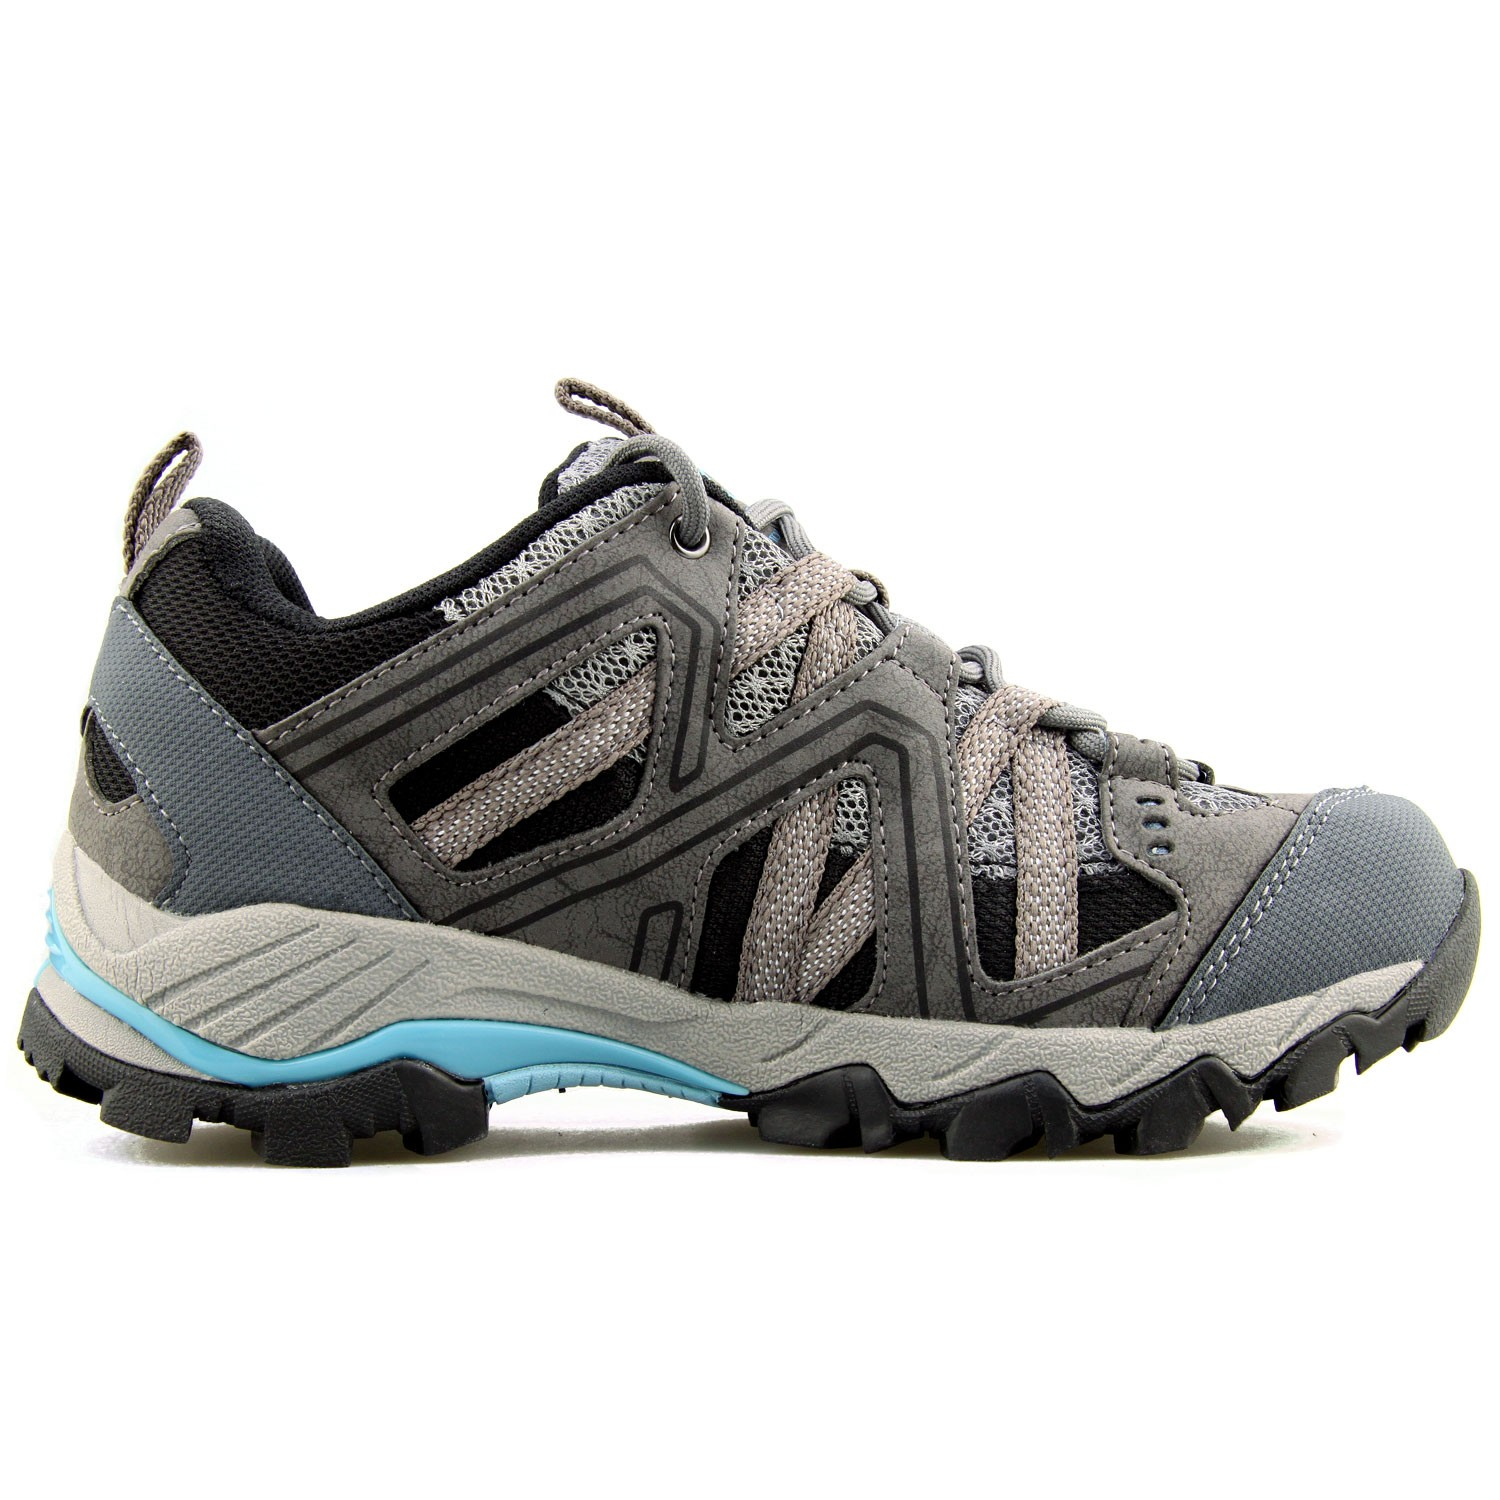 Membeli Mens Kulit Hiking Boots Hiking Shoes,Mens Kulit Hiking Boots Hiking Shoes Harga,Mens Kulit Hiking Boots Hiking Shoes Jenama,Mens Kulit Hiking Boots Hiking Shoes  Pengeluar,Mens Kulit Hiking Boots Hiking Shoes Petikan,Mens Kulit Hiking Boots Hiking Shoes syarikat,